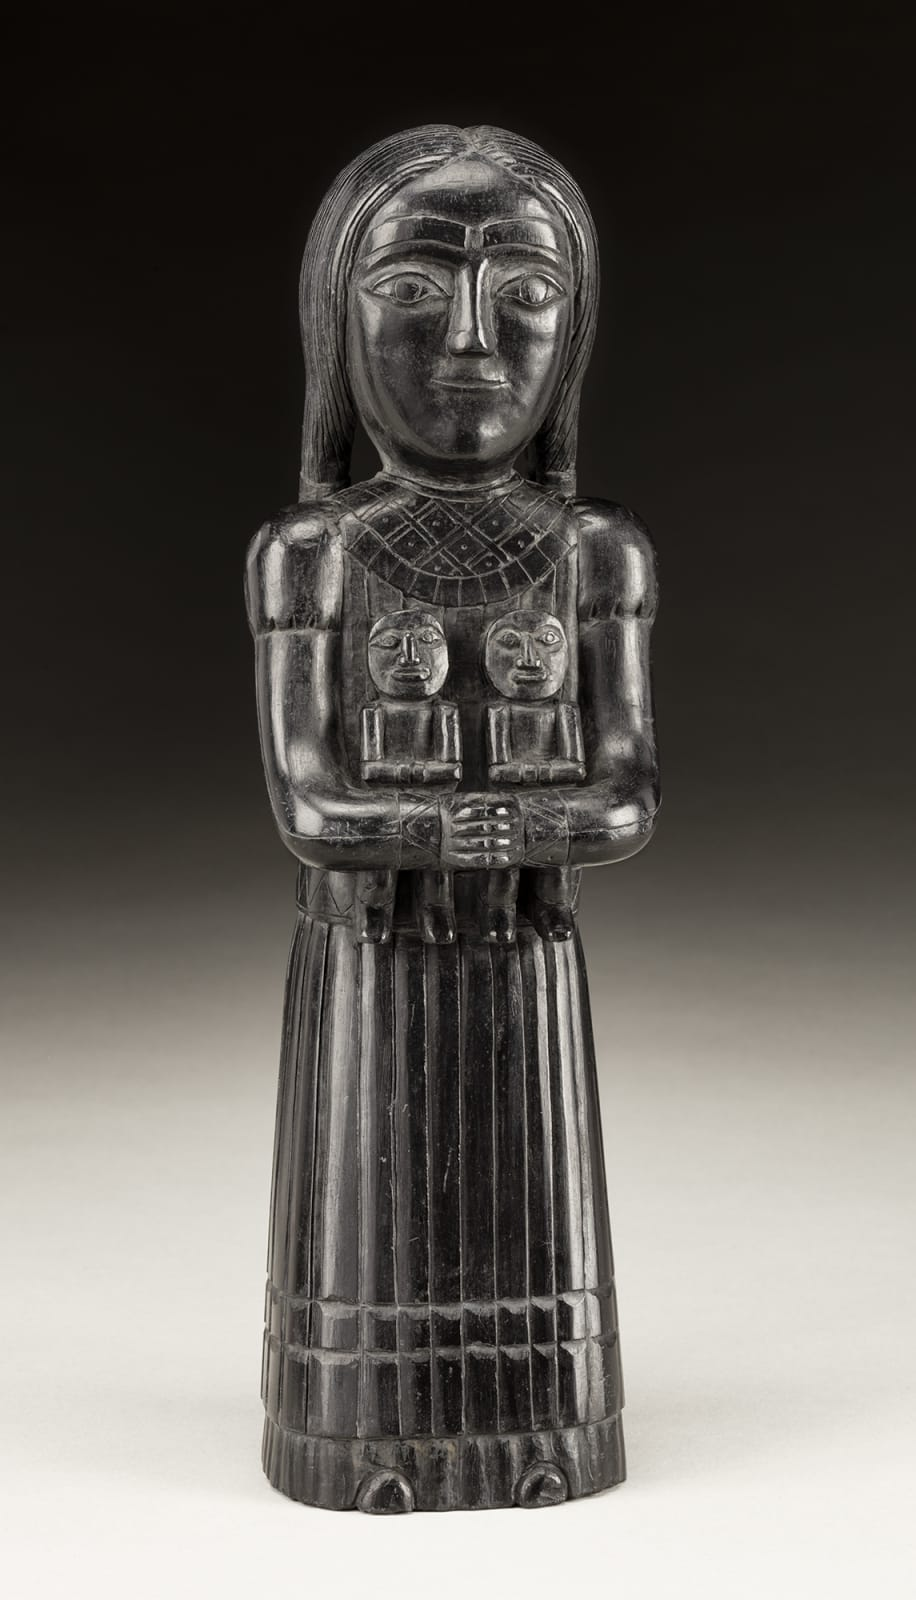 UNIDENTIFIED ARTIST, HAIDA, Female Figure Holding Two Dolls, c. 1840-1860